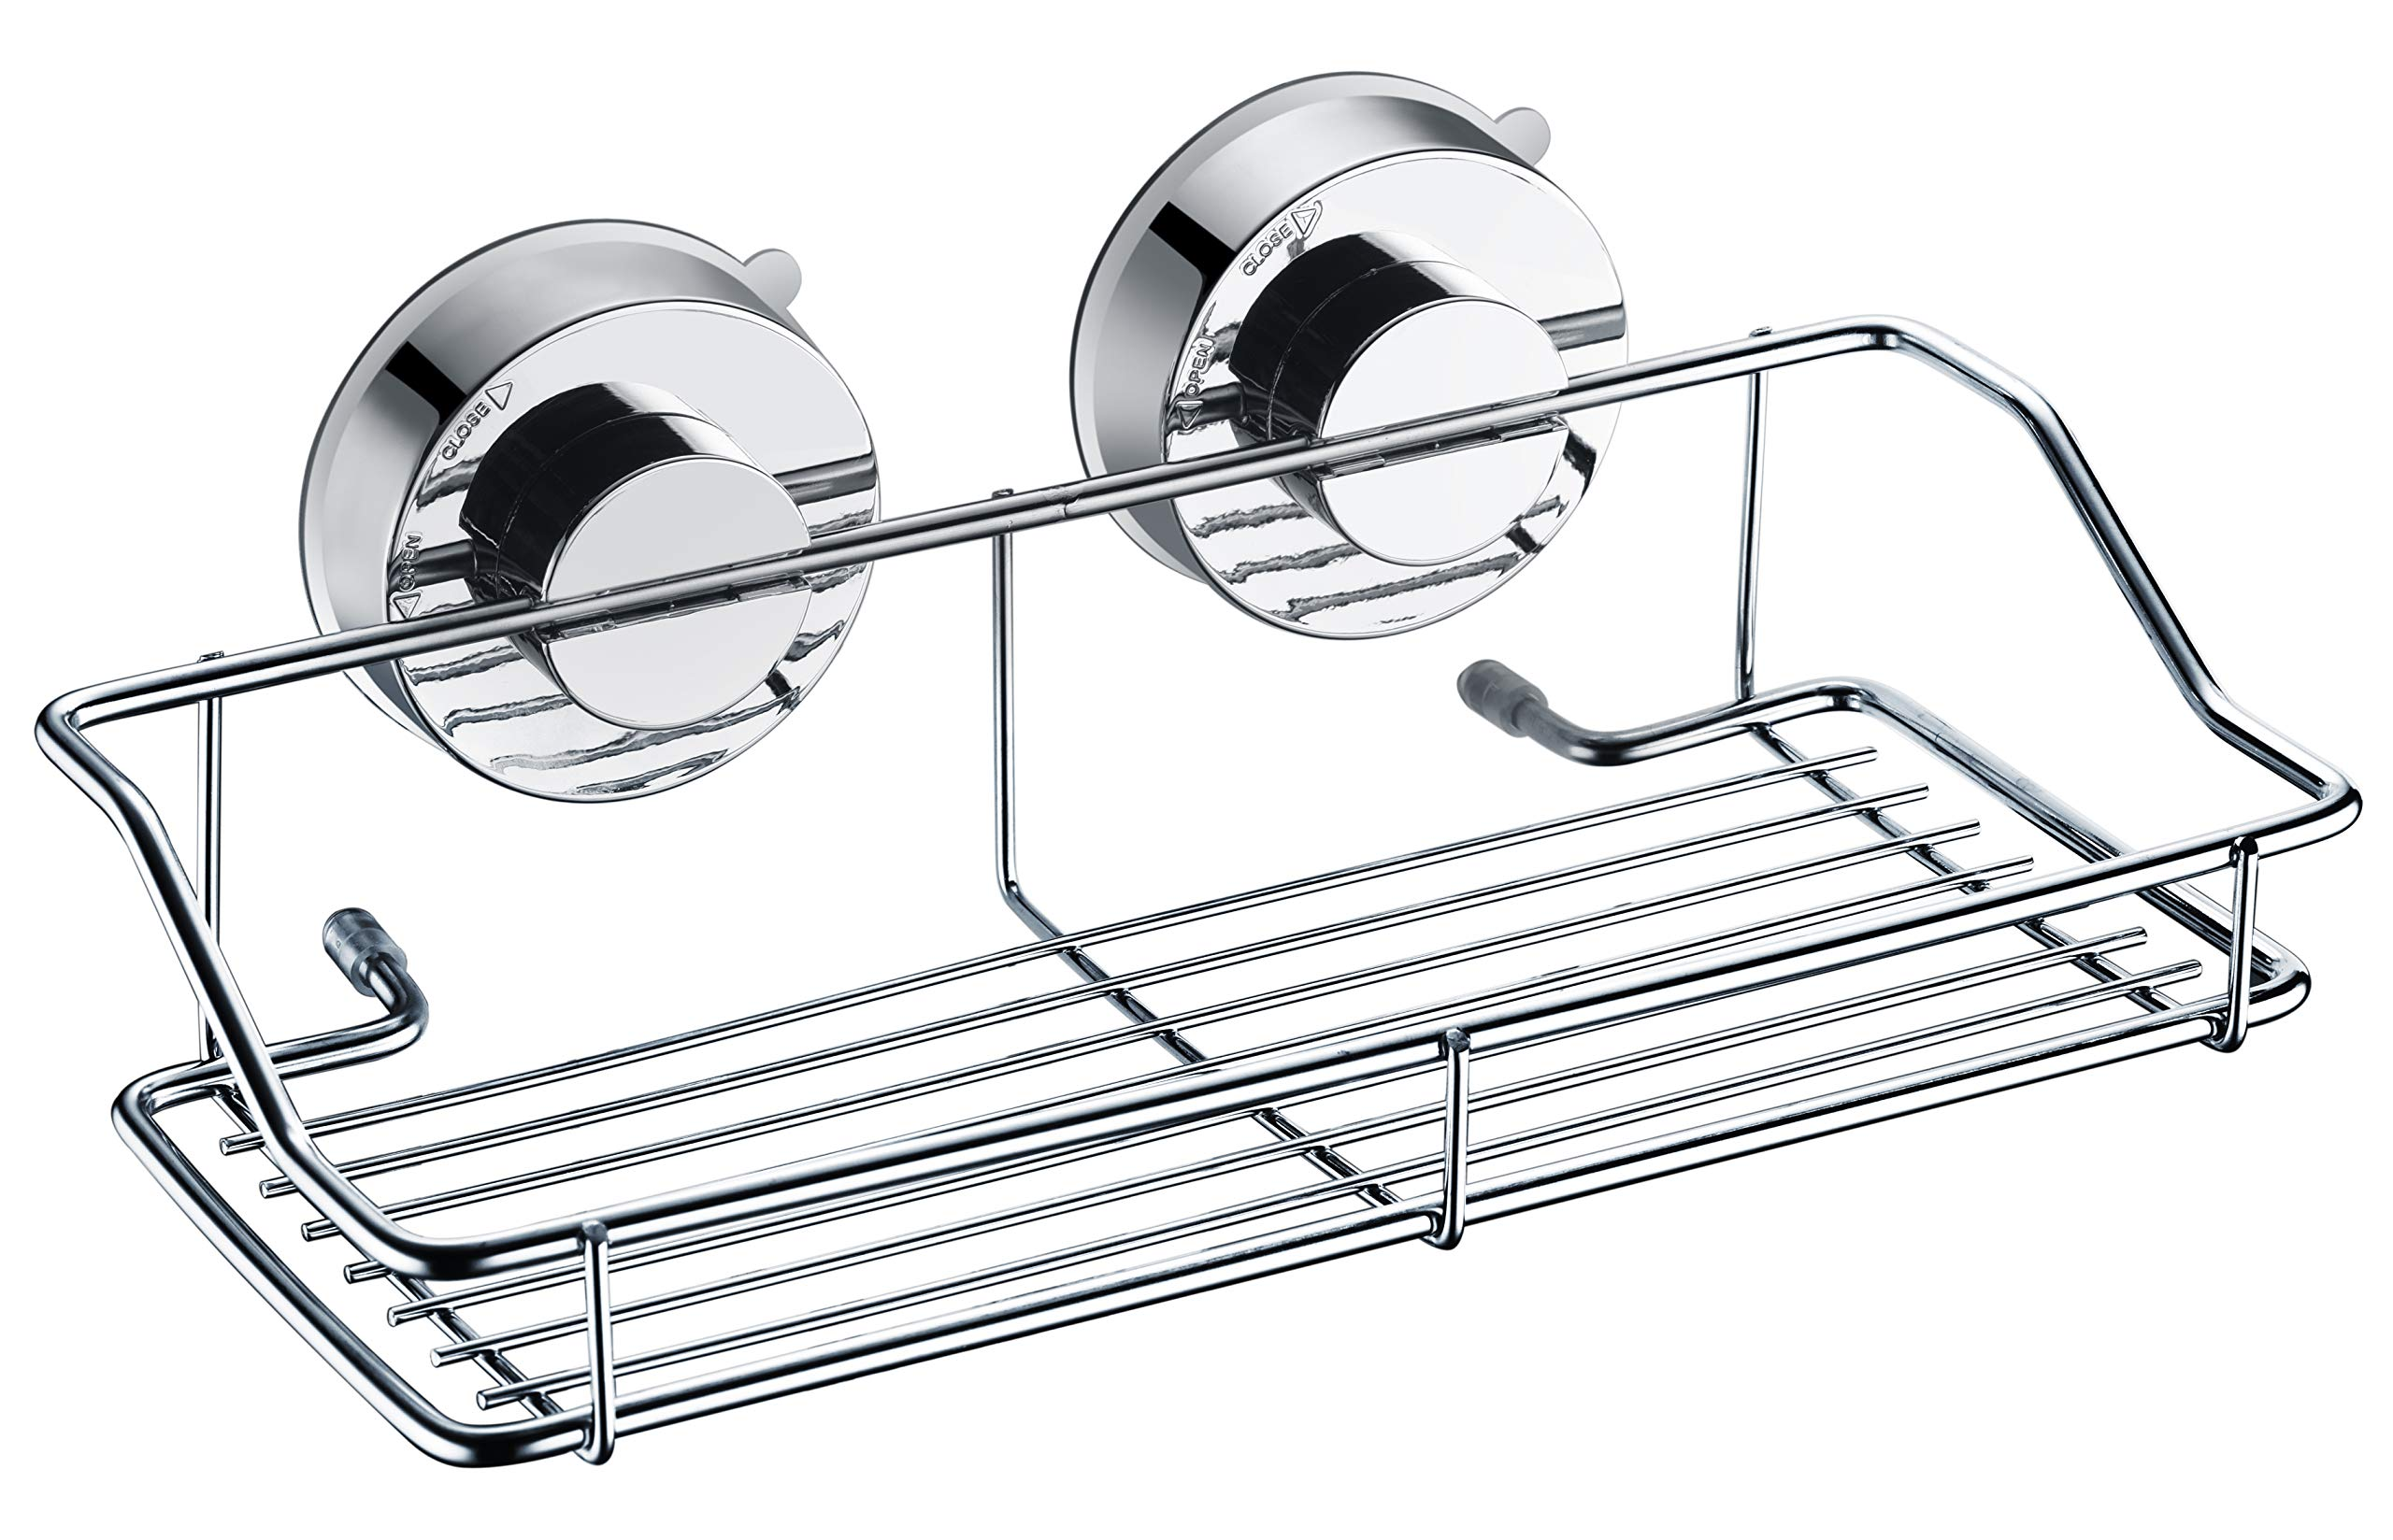 AquaKin Suction Cup Shower Caddy Basket -Stainless Steel Shelf for Shower Storage